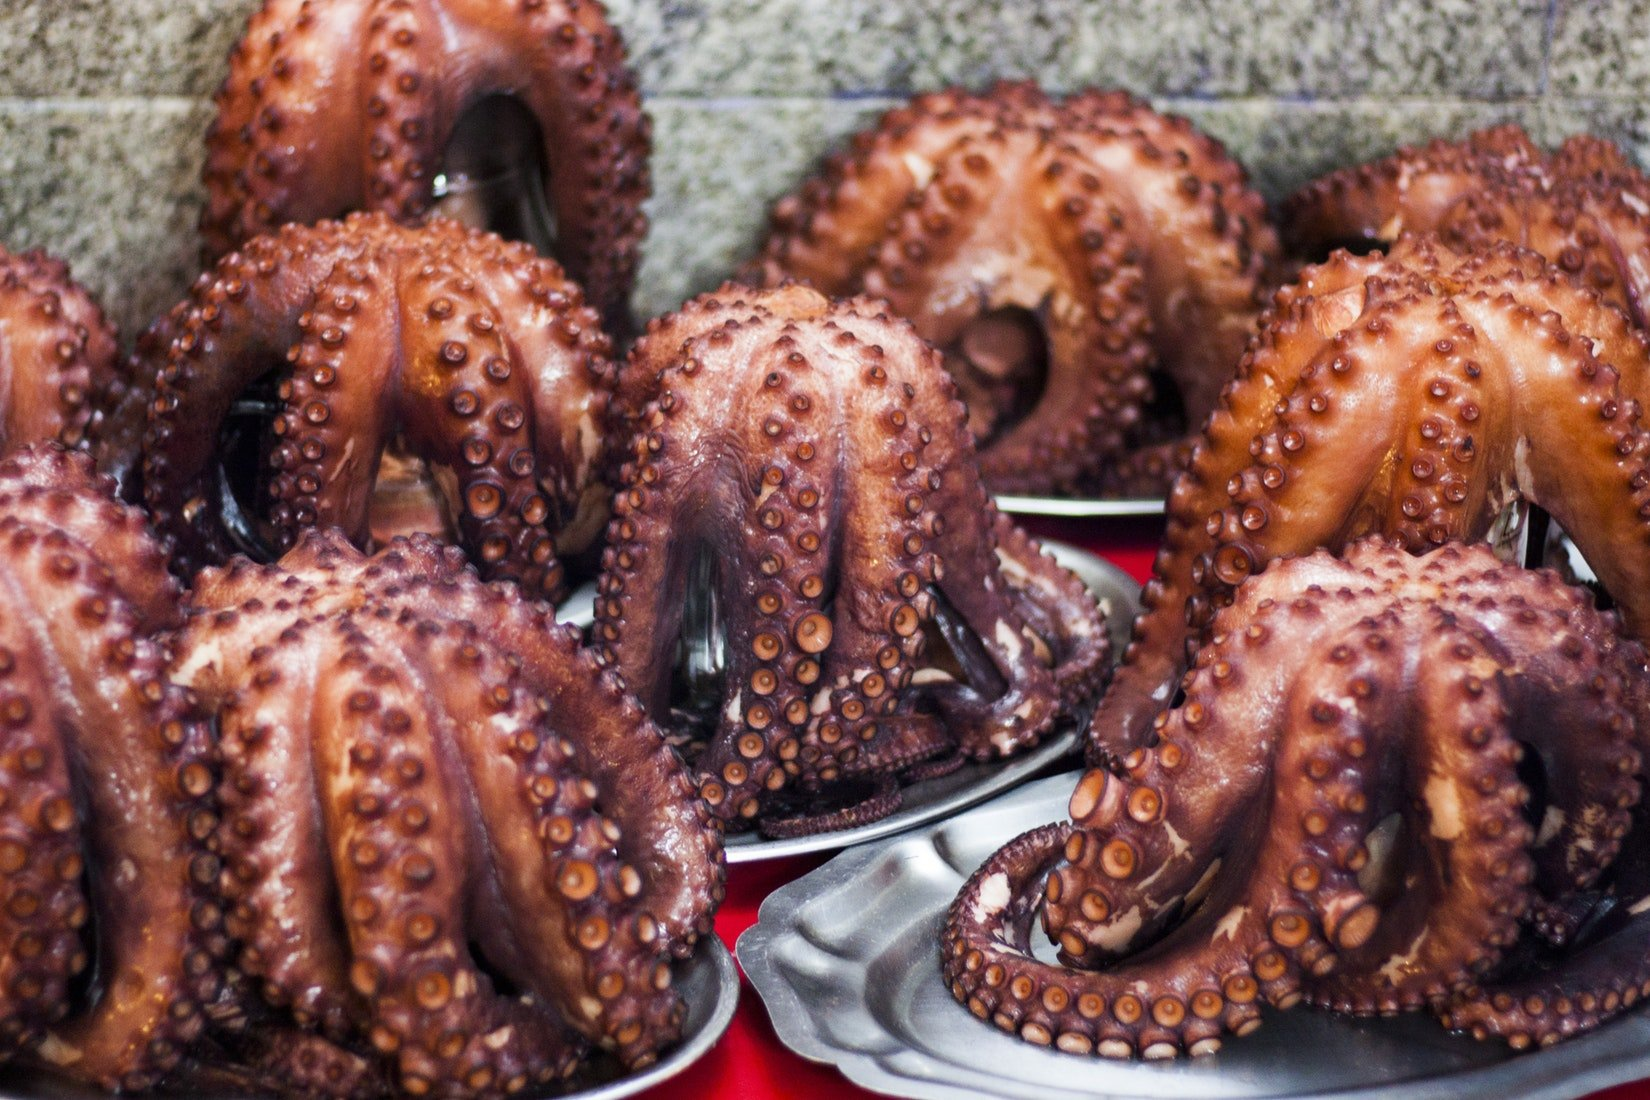 Plates of pulpo gallego (Spanish octopus)